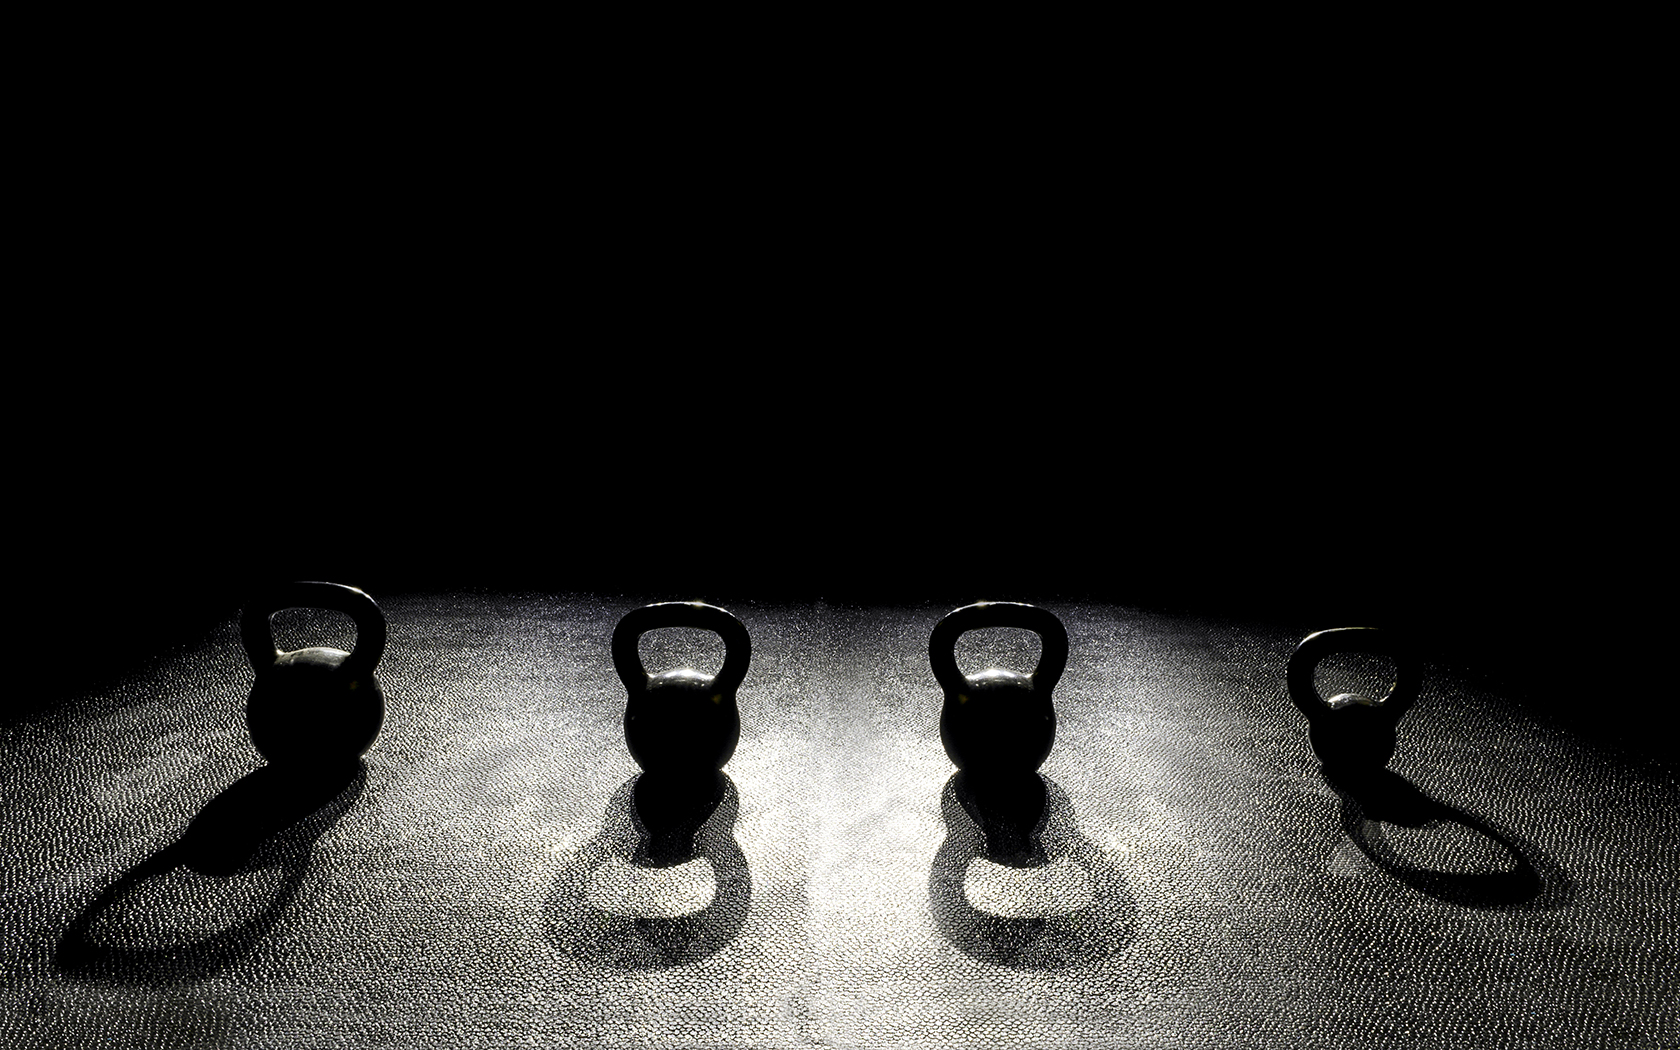 Onnit-Academy-Workout-of-the-Day-37-Kettlebell-Workout.jpg